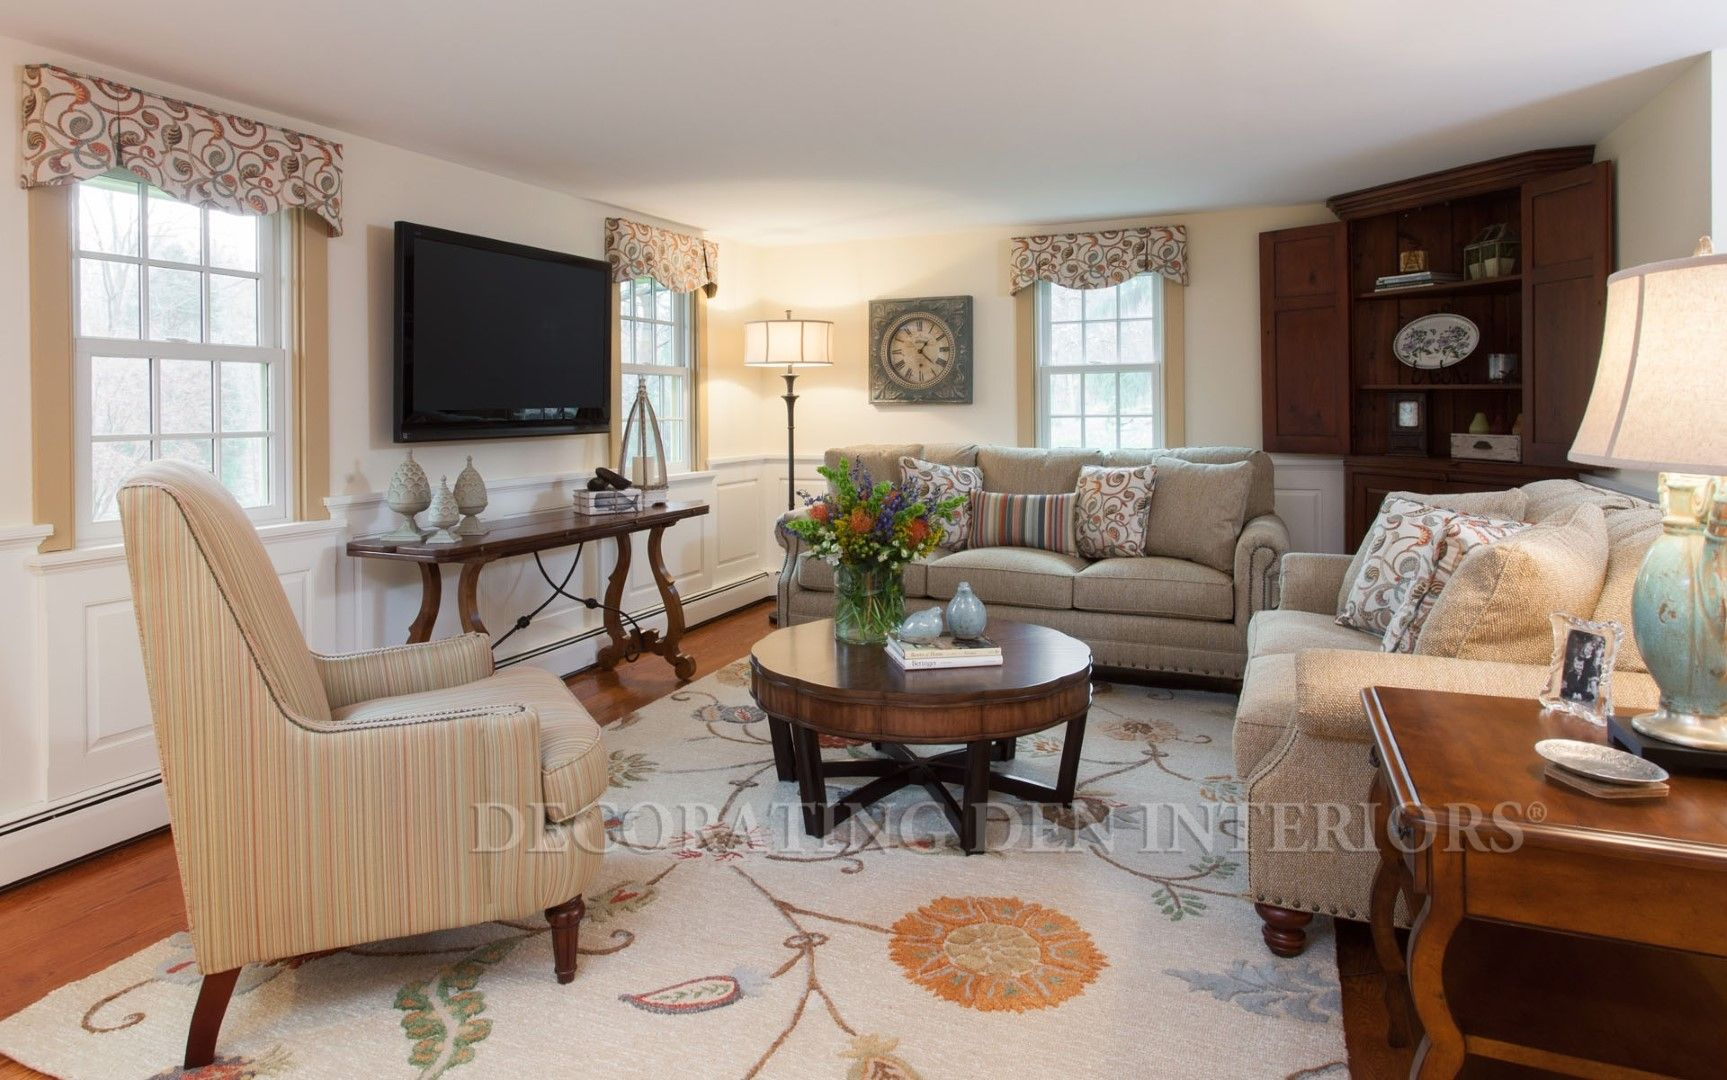 Family Room Designs By Decorating Den Interiors Want This Look Call Julie Ann To Set Up Your Free Consultation 651 504 2080